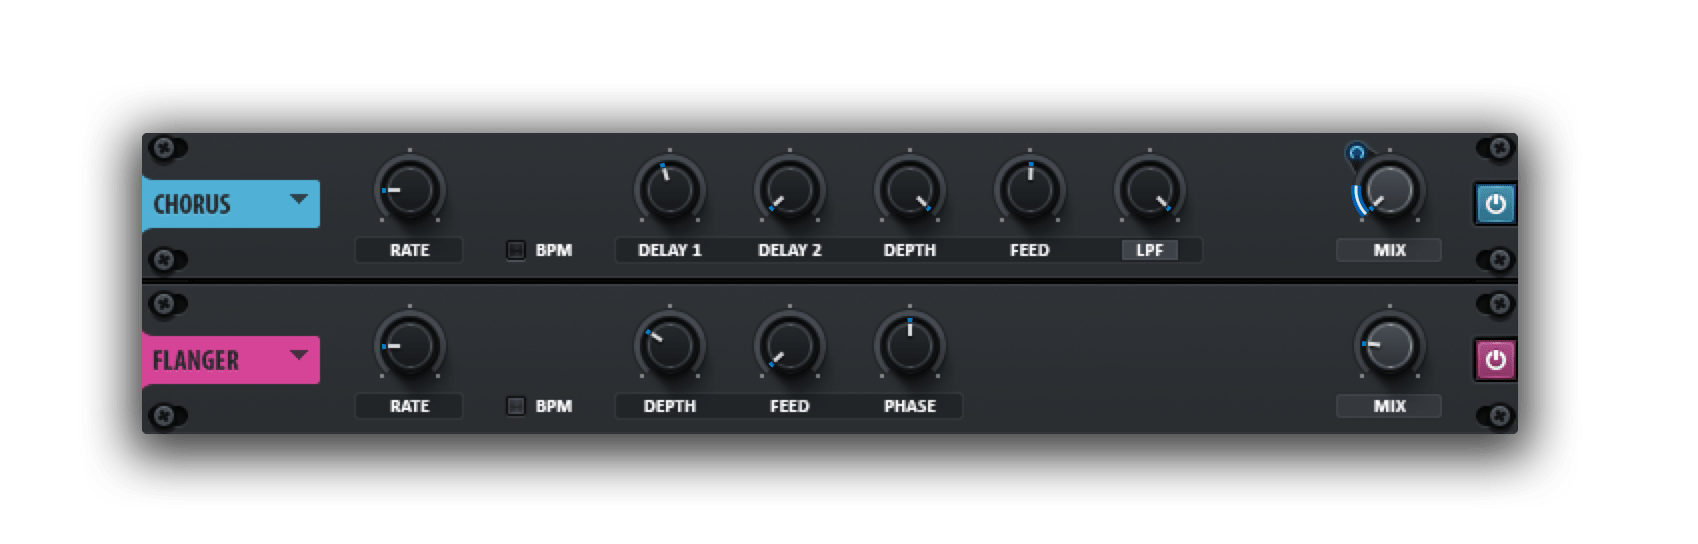 chorus flanger xfer serum production tips